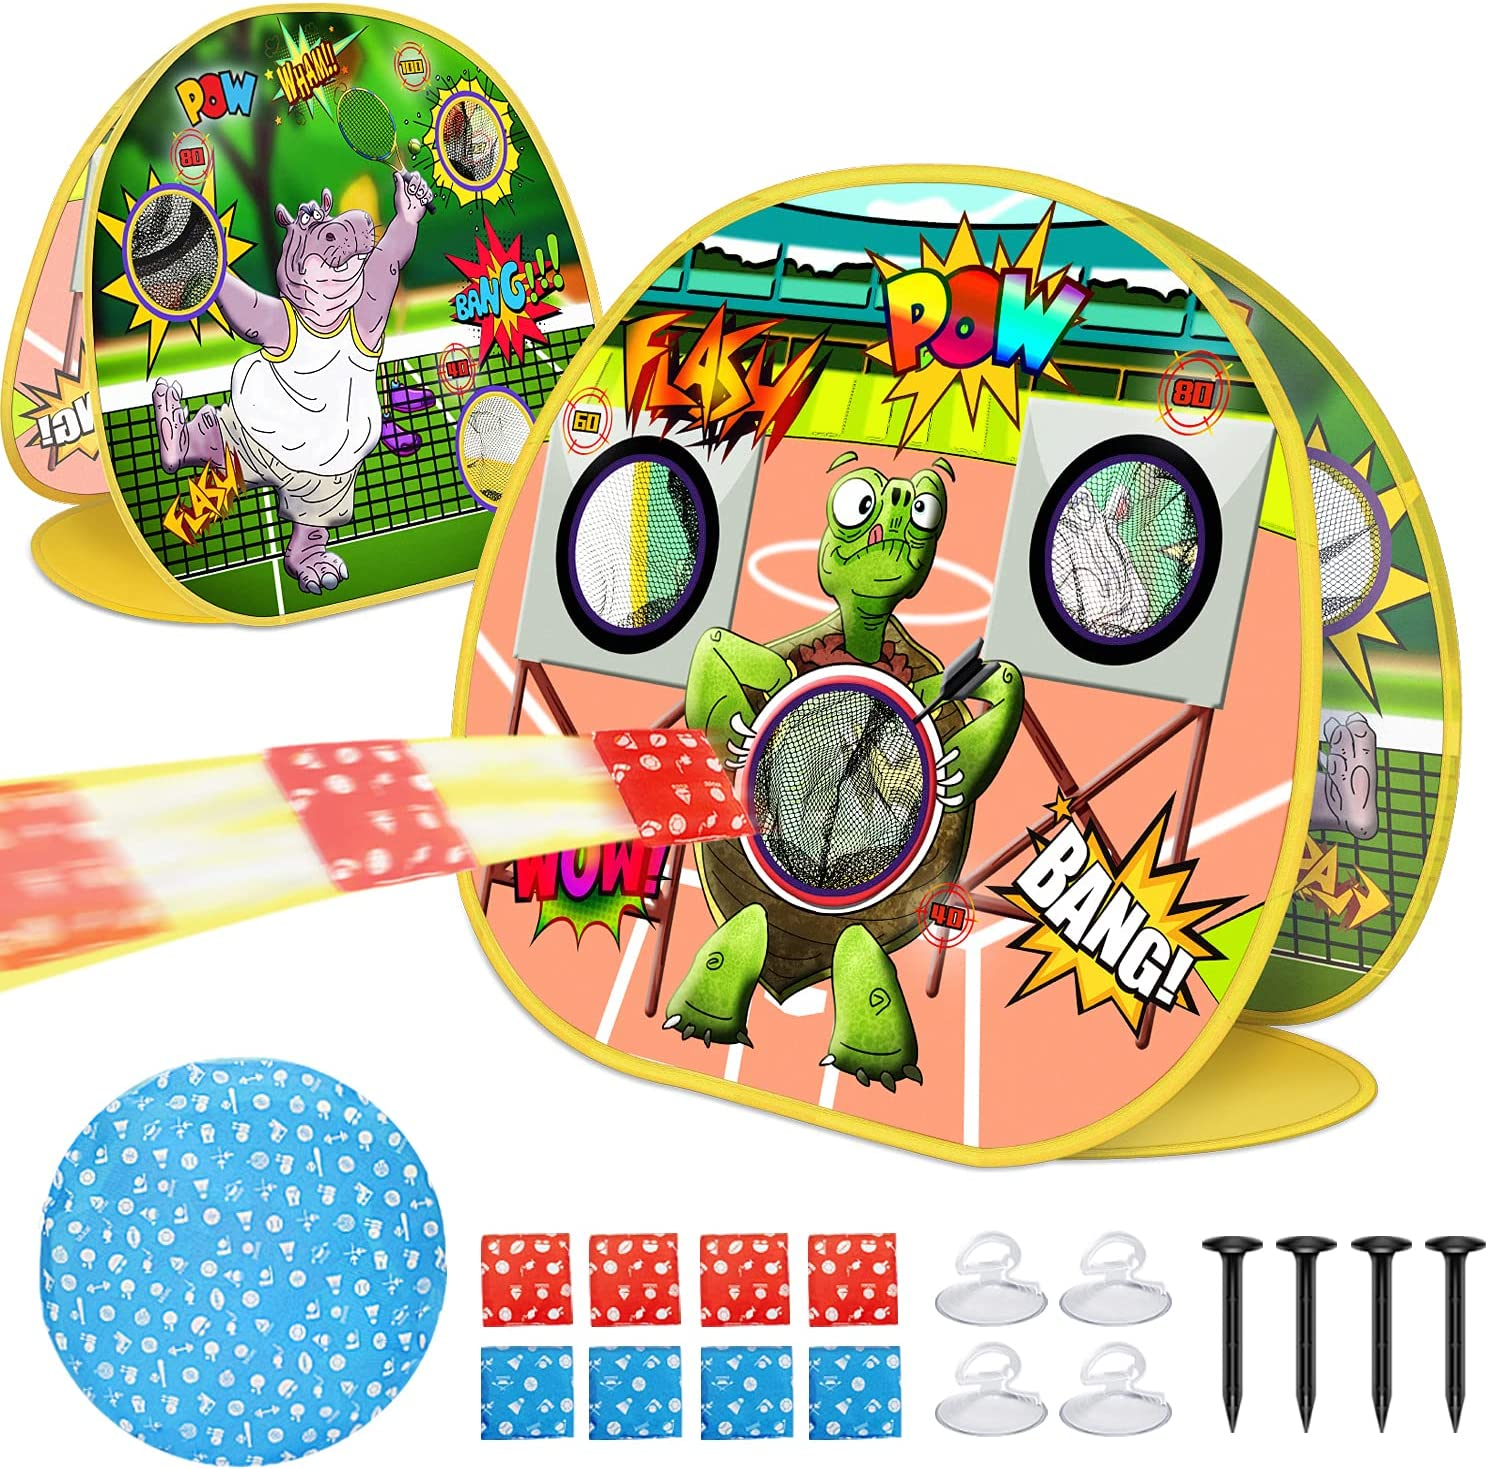 V-Opitos Bean Bag Toss Game Outdoor Toys [Alternative dealer] of Kids Beauty products for 2 Age 4 3